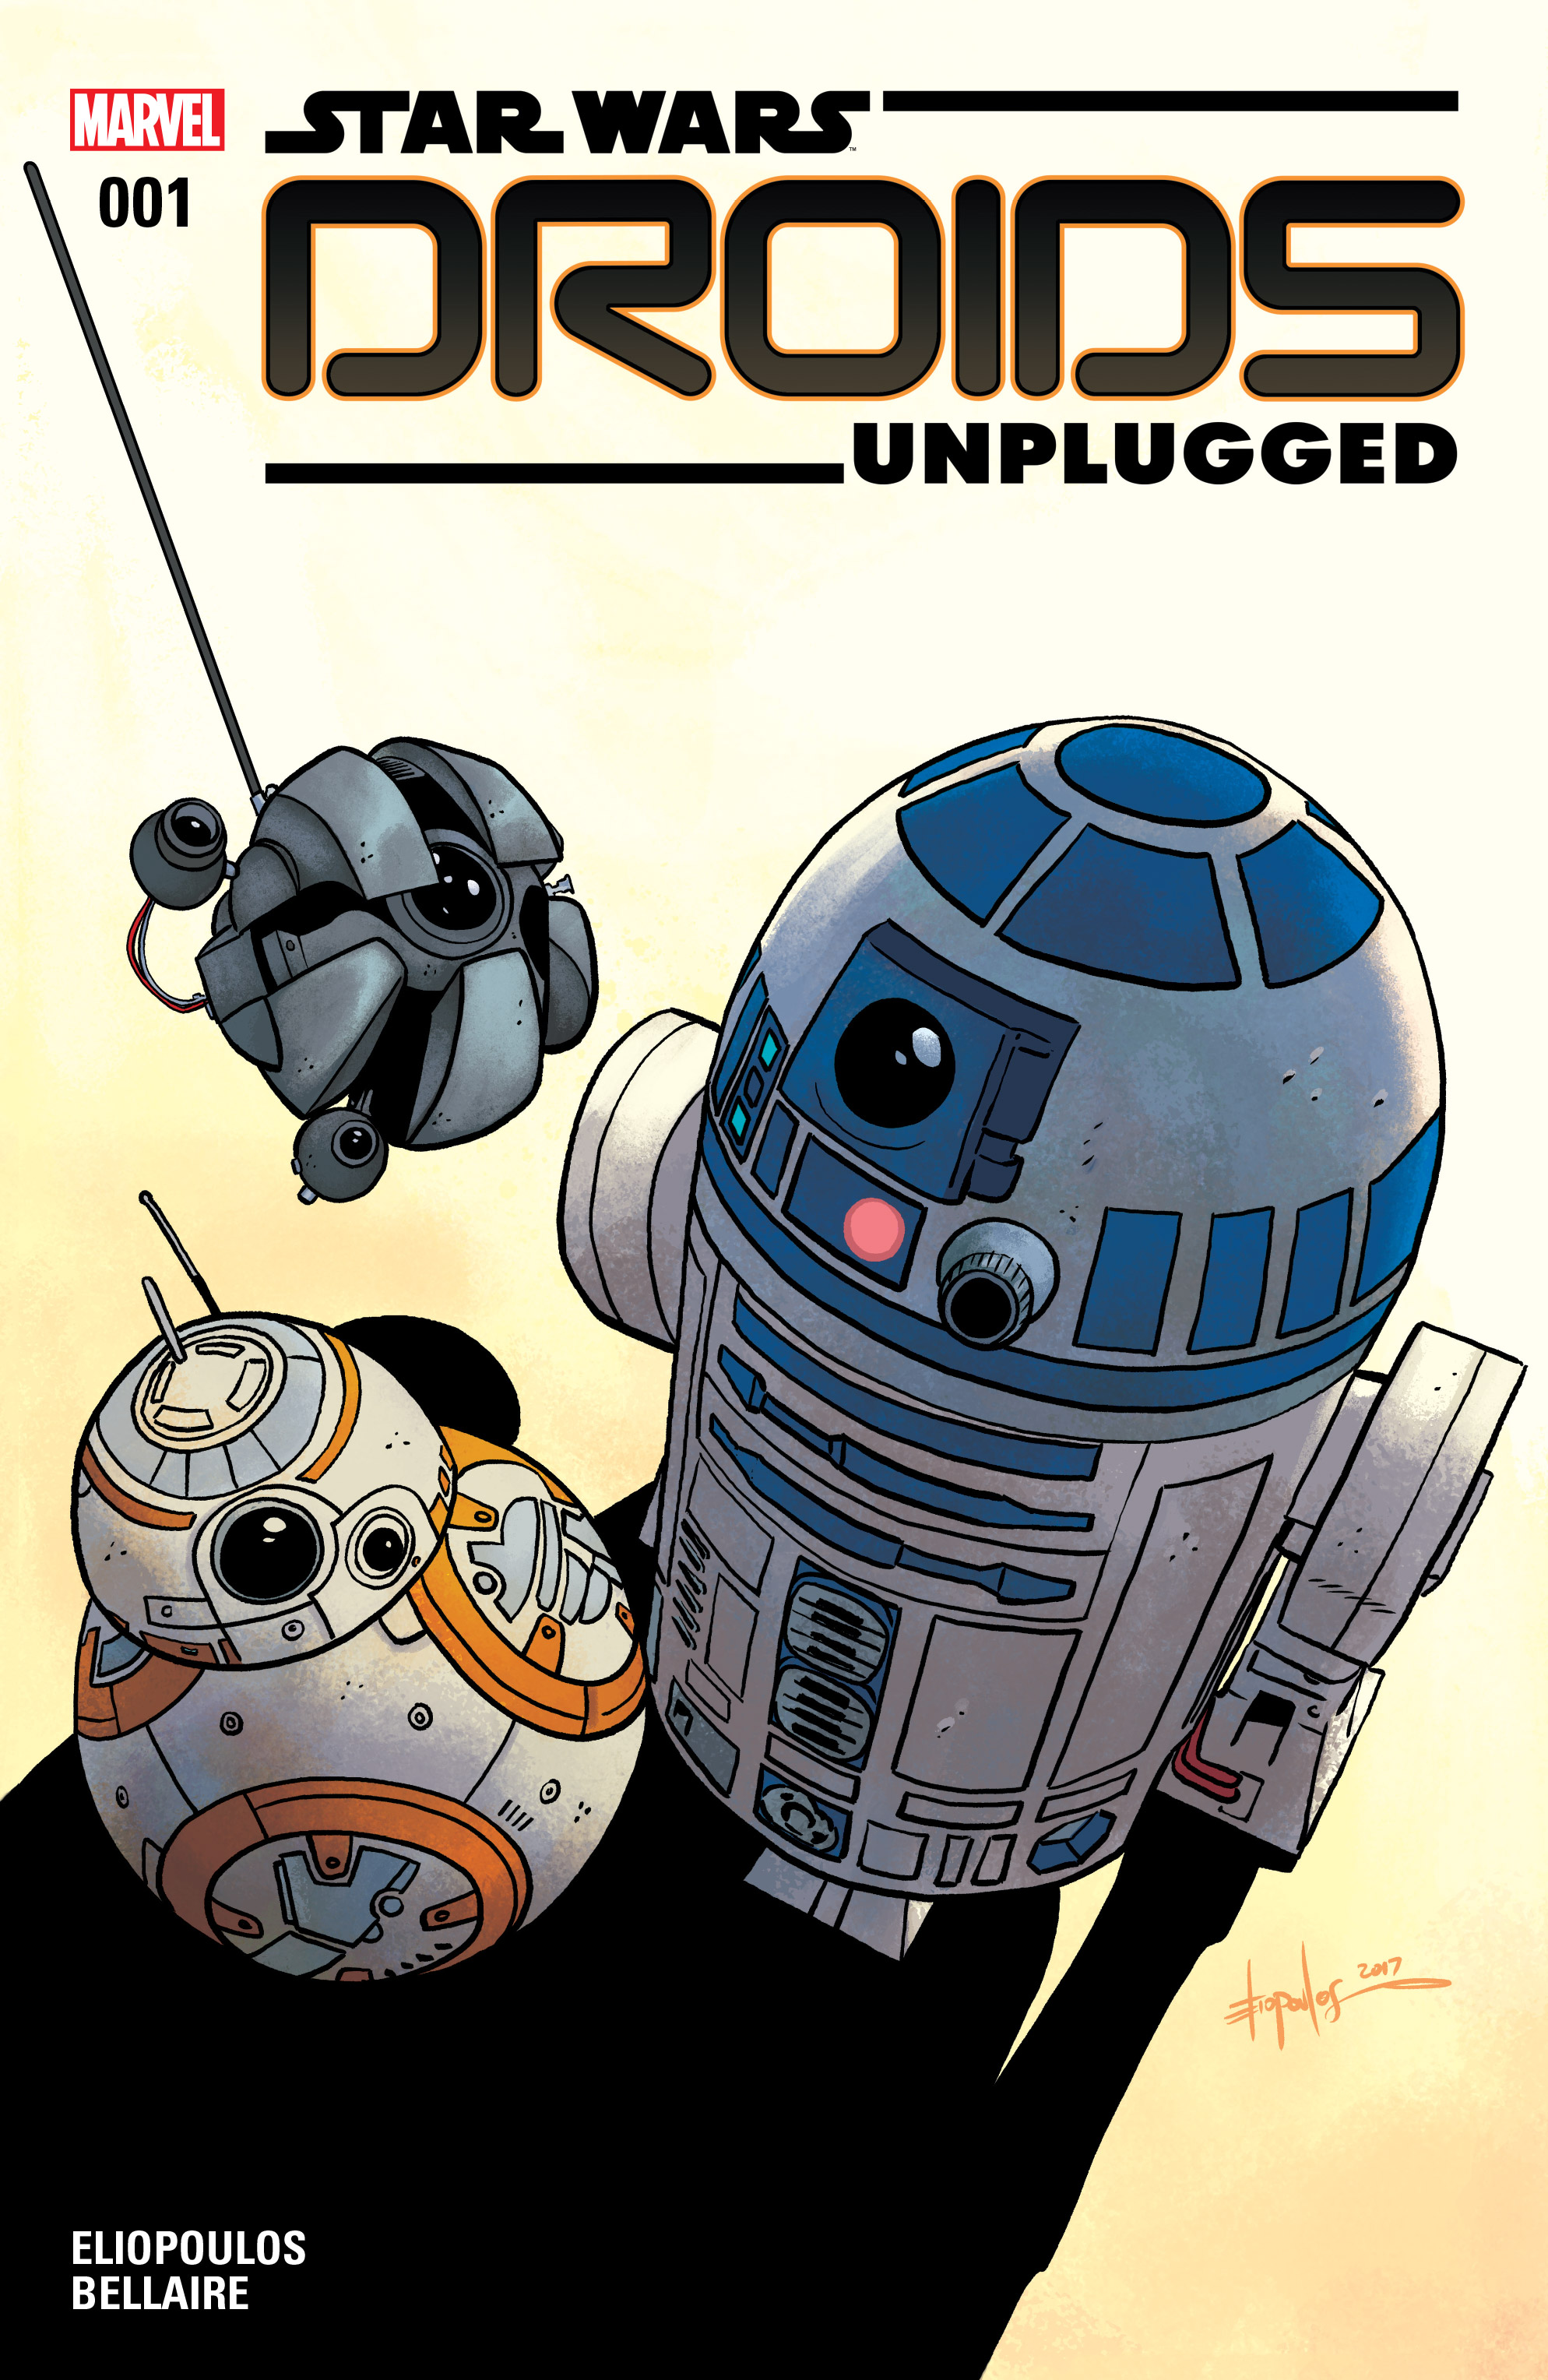 Star Wars: Droids Unplugged 1